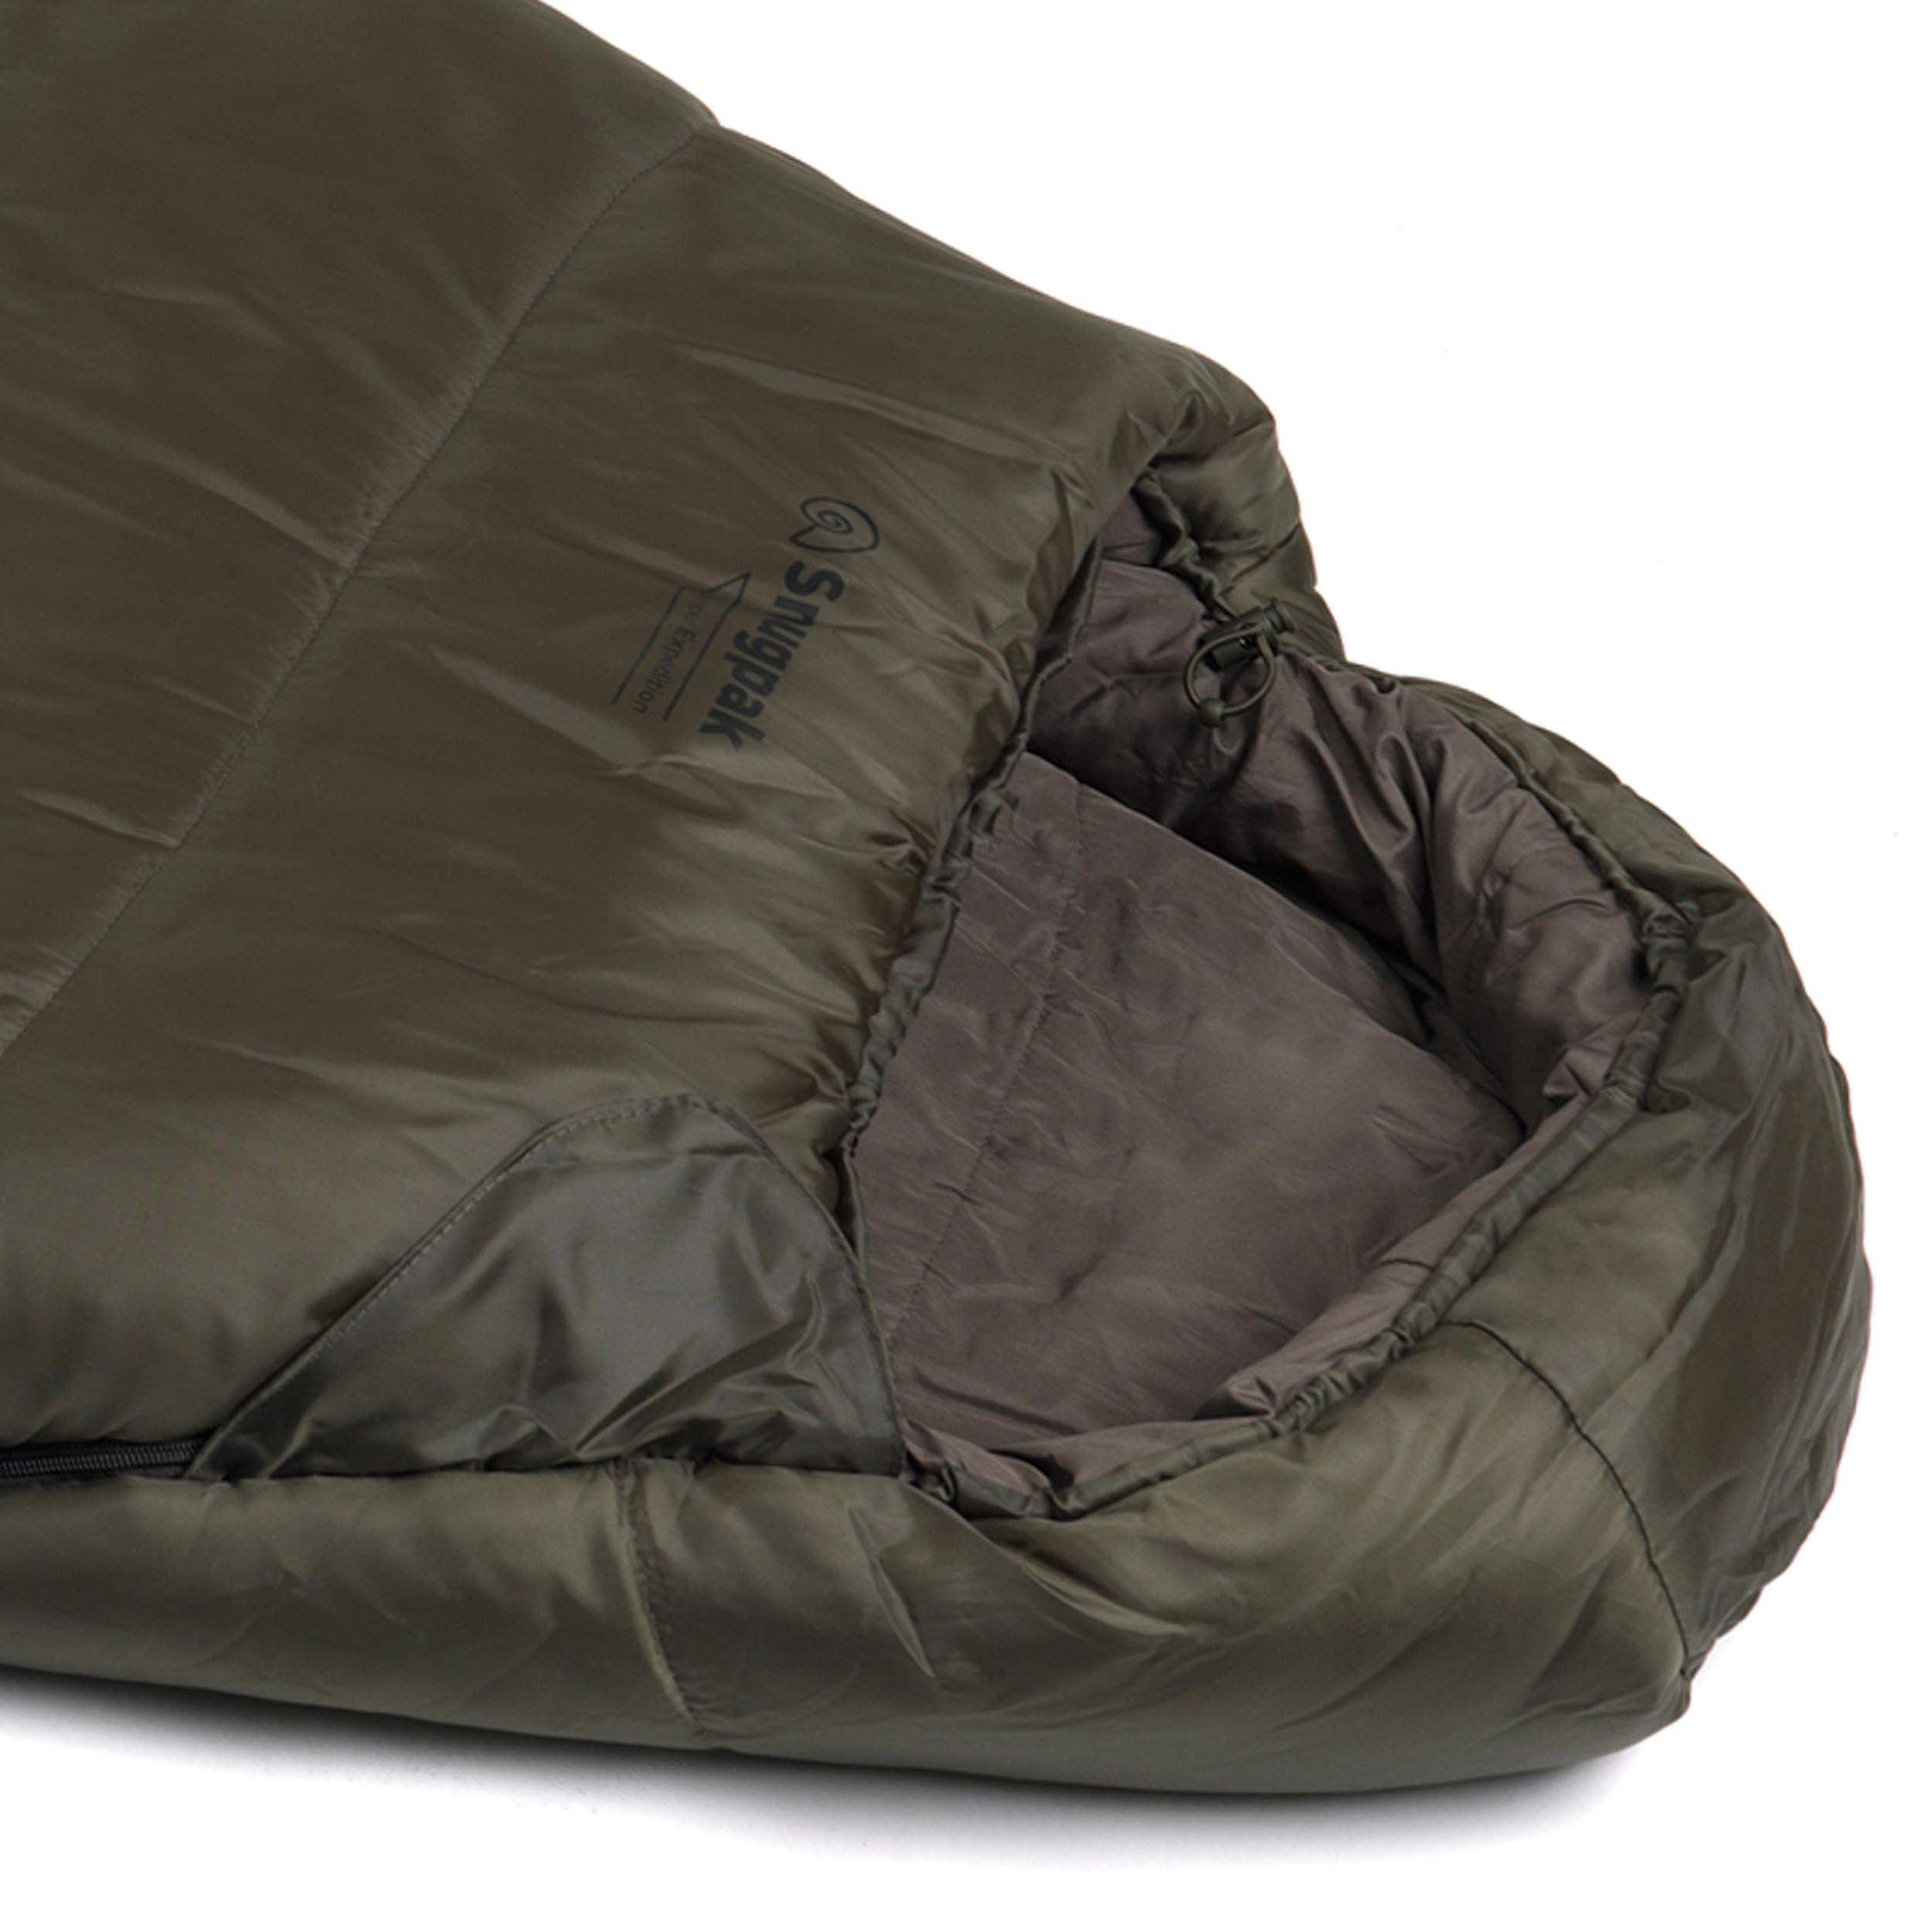 Snugpak-Basecamp-Ops-Sleeper-Expedition-Sleeping-Bag-4-Season-Insulated-Olive thumbnail 2